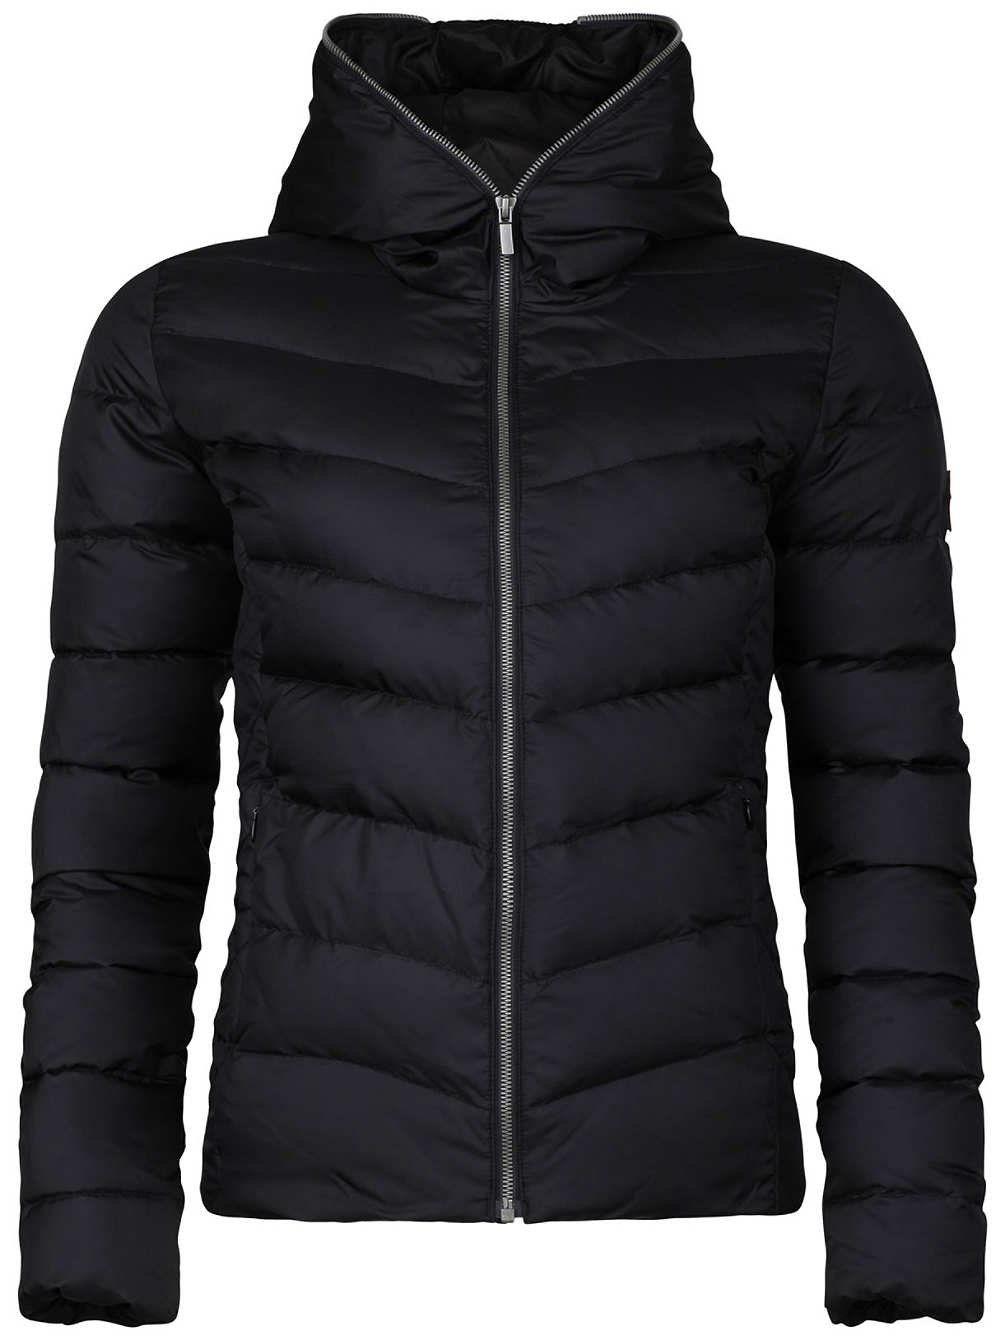 Damen Snowboard Jacke O'Neill Packable Down Jacket kaufen